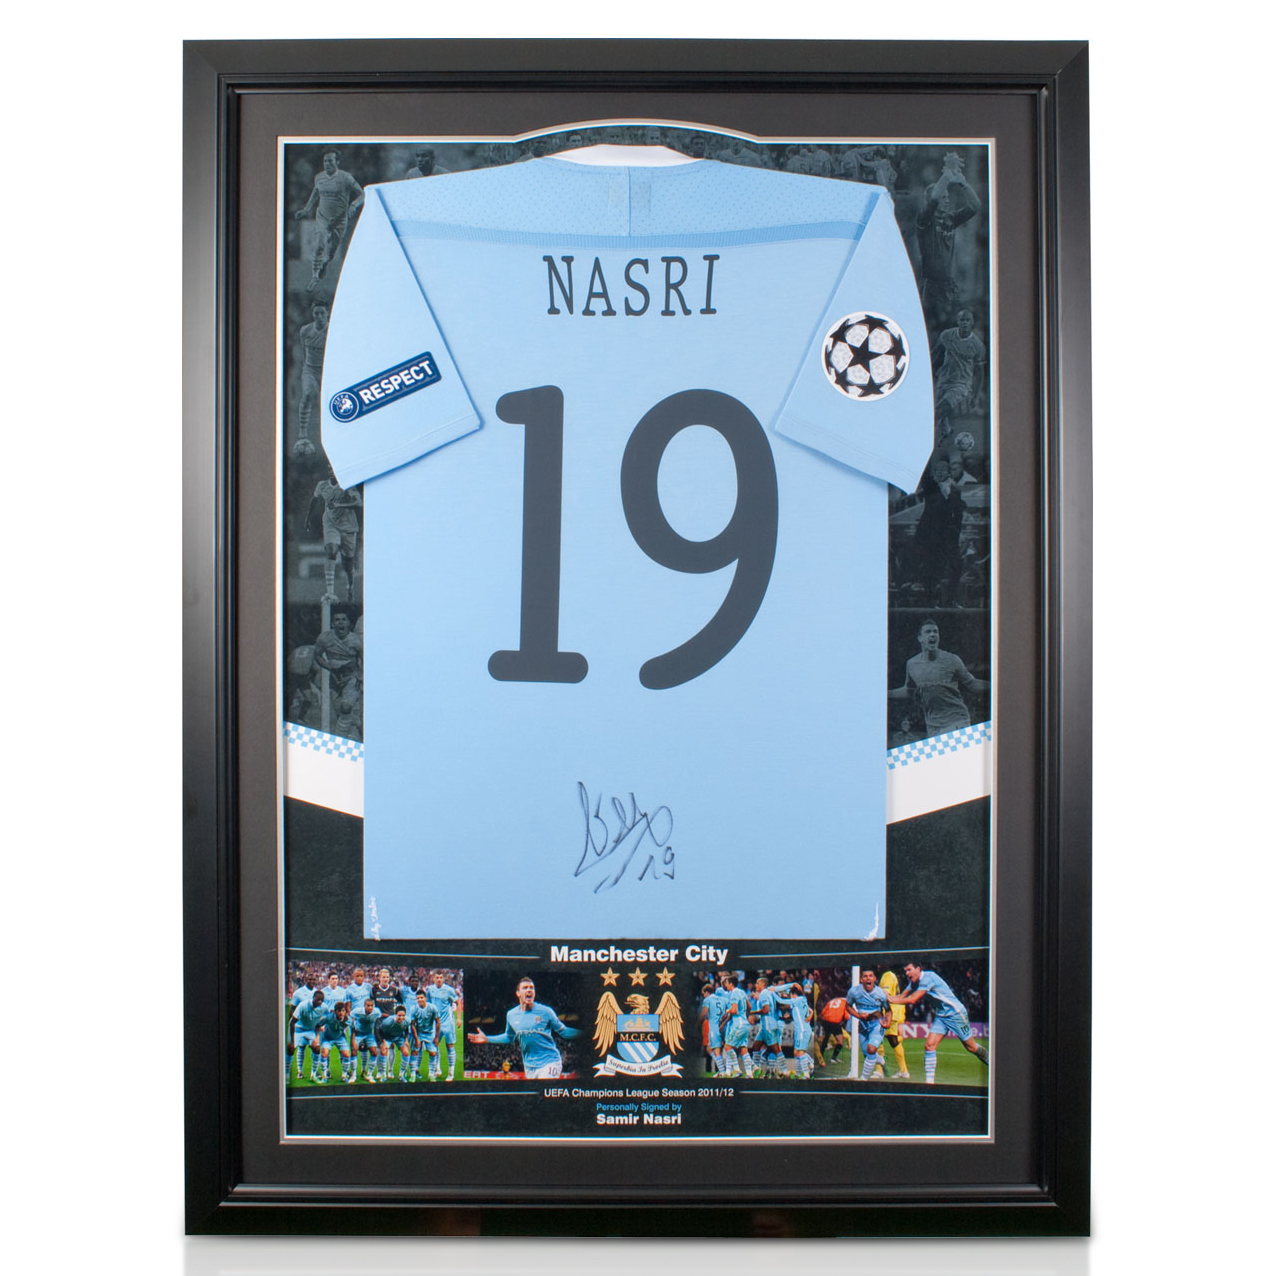 Manchester City Champions League Player Signed Framed Shirt - Nasri